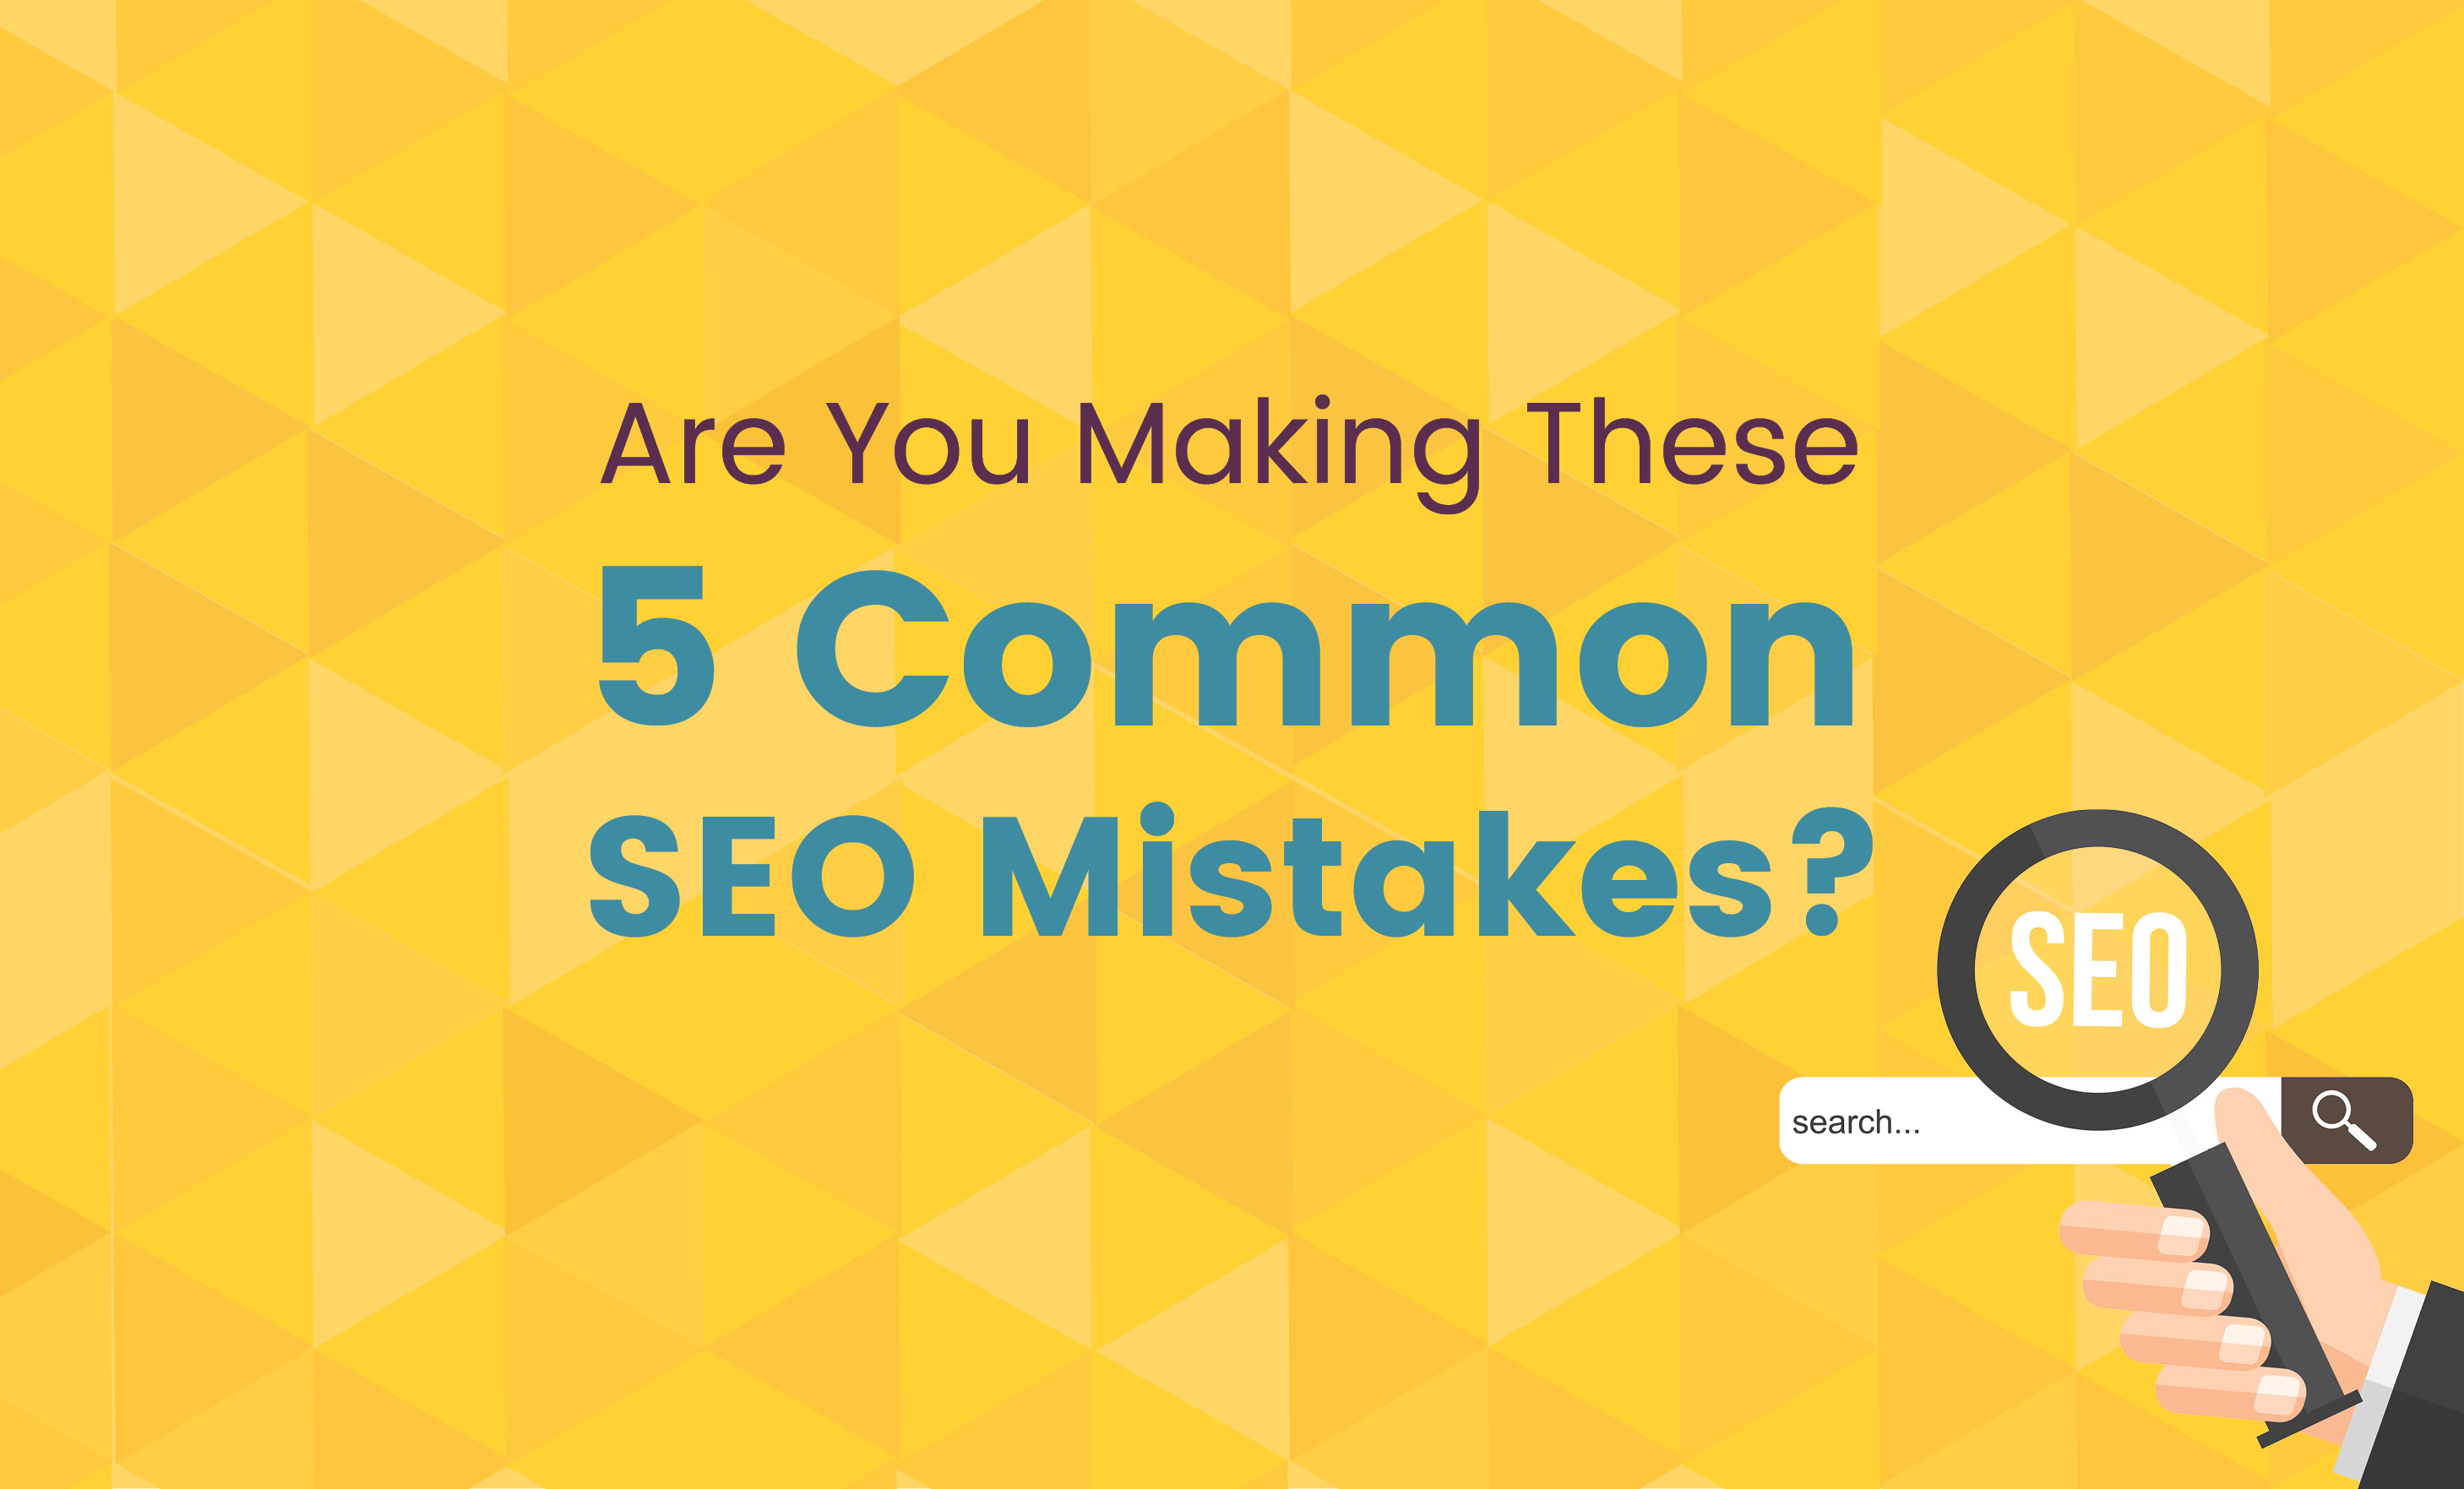 Are You Making These 5 Common SEO Mistakes?